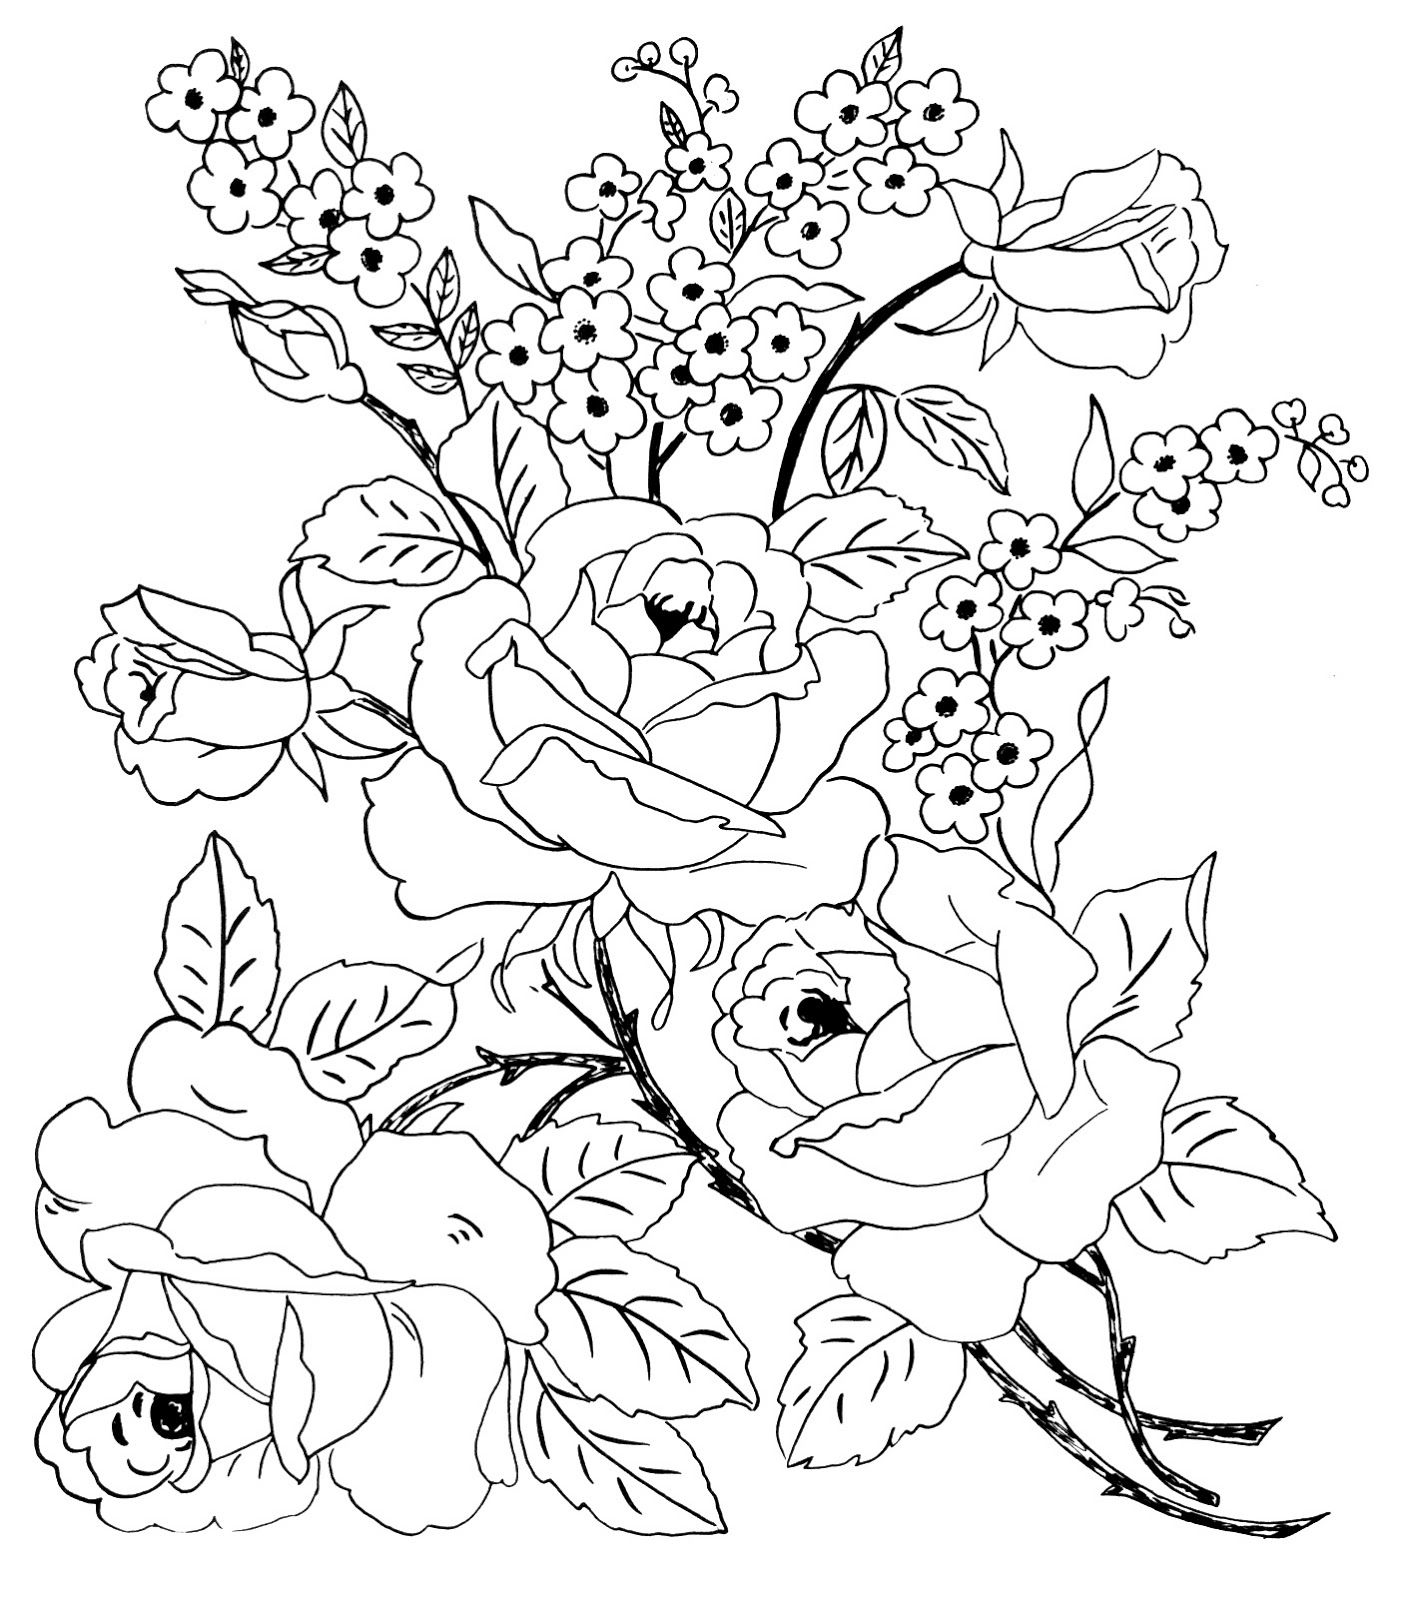 Rosevine Dtt Jpg 1402 1600 Flower Coloring Pages Fabric Painting Coloring Pages